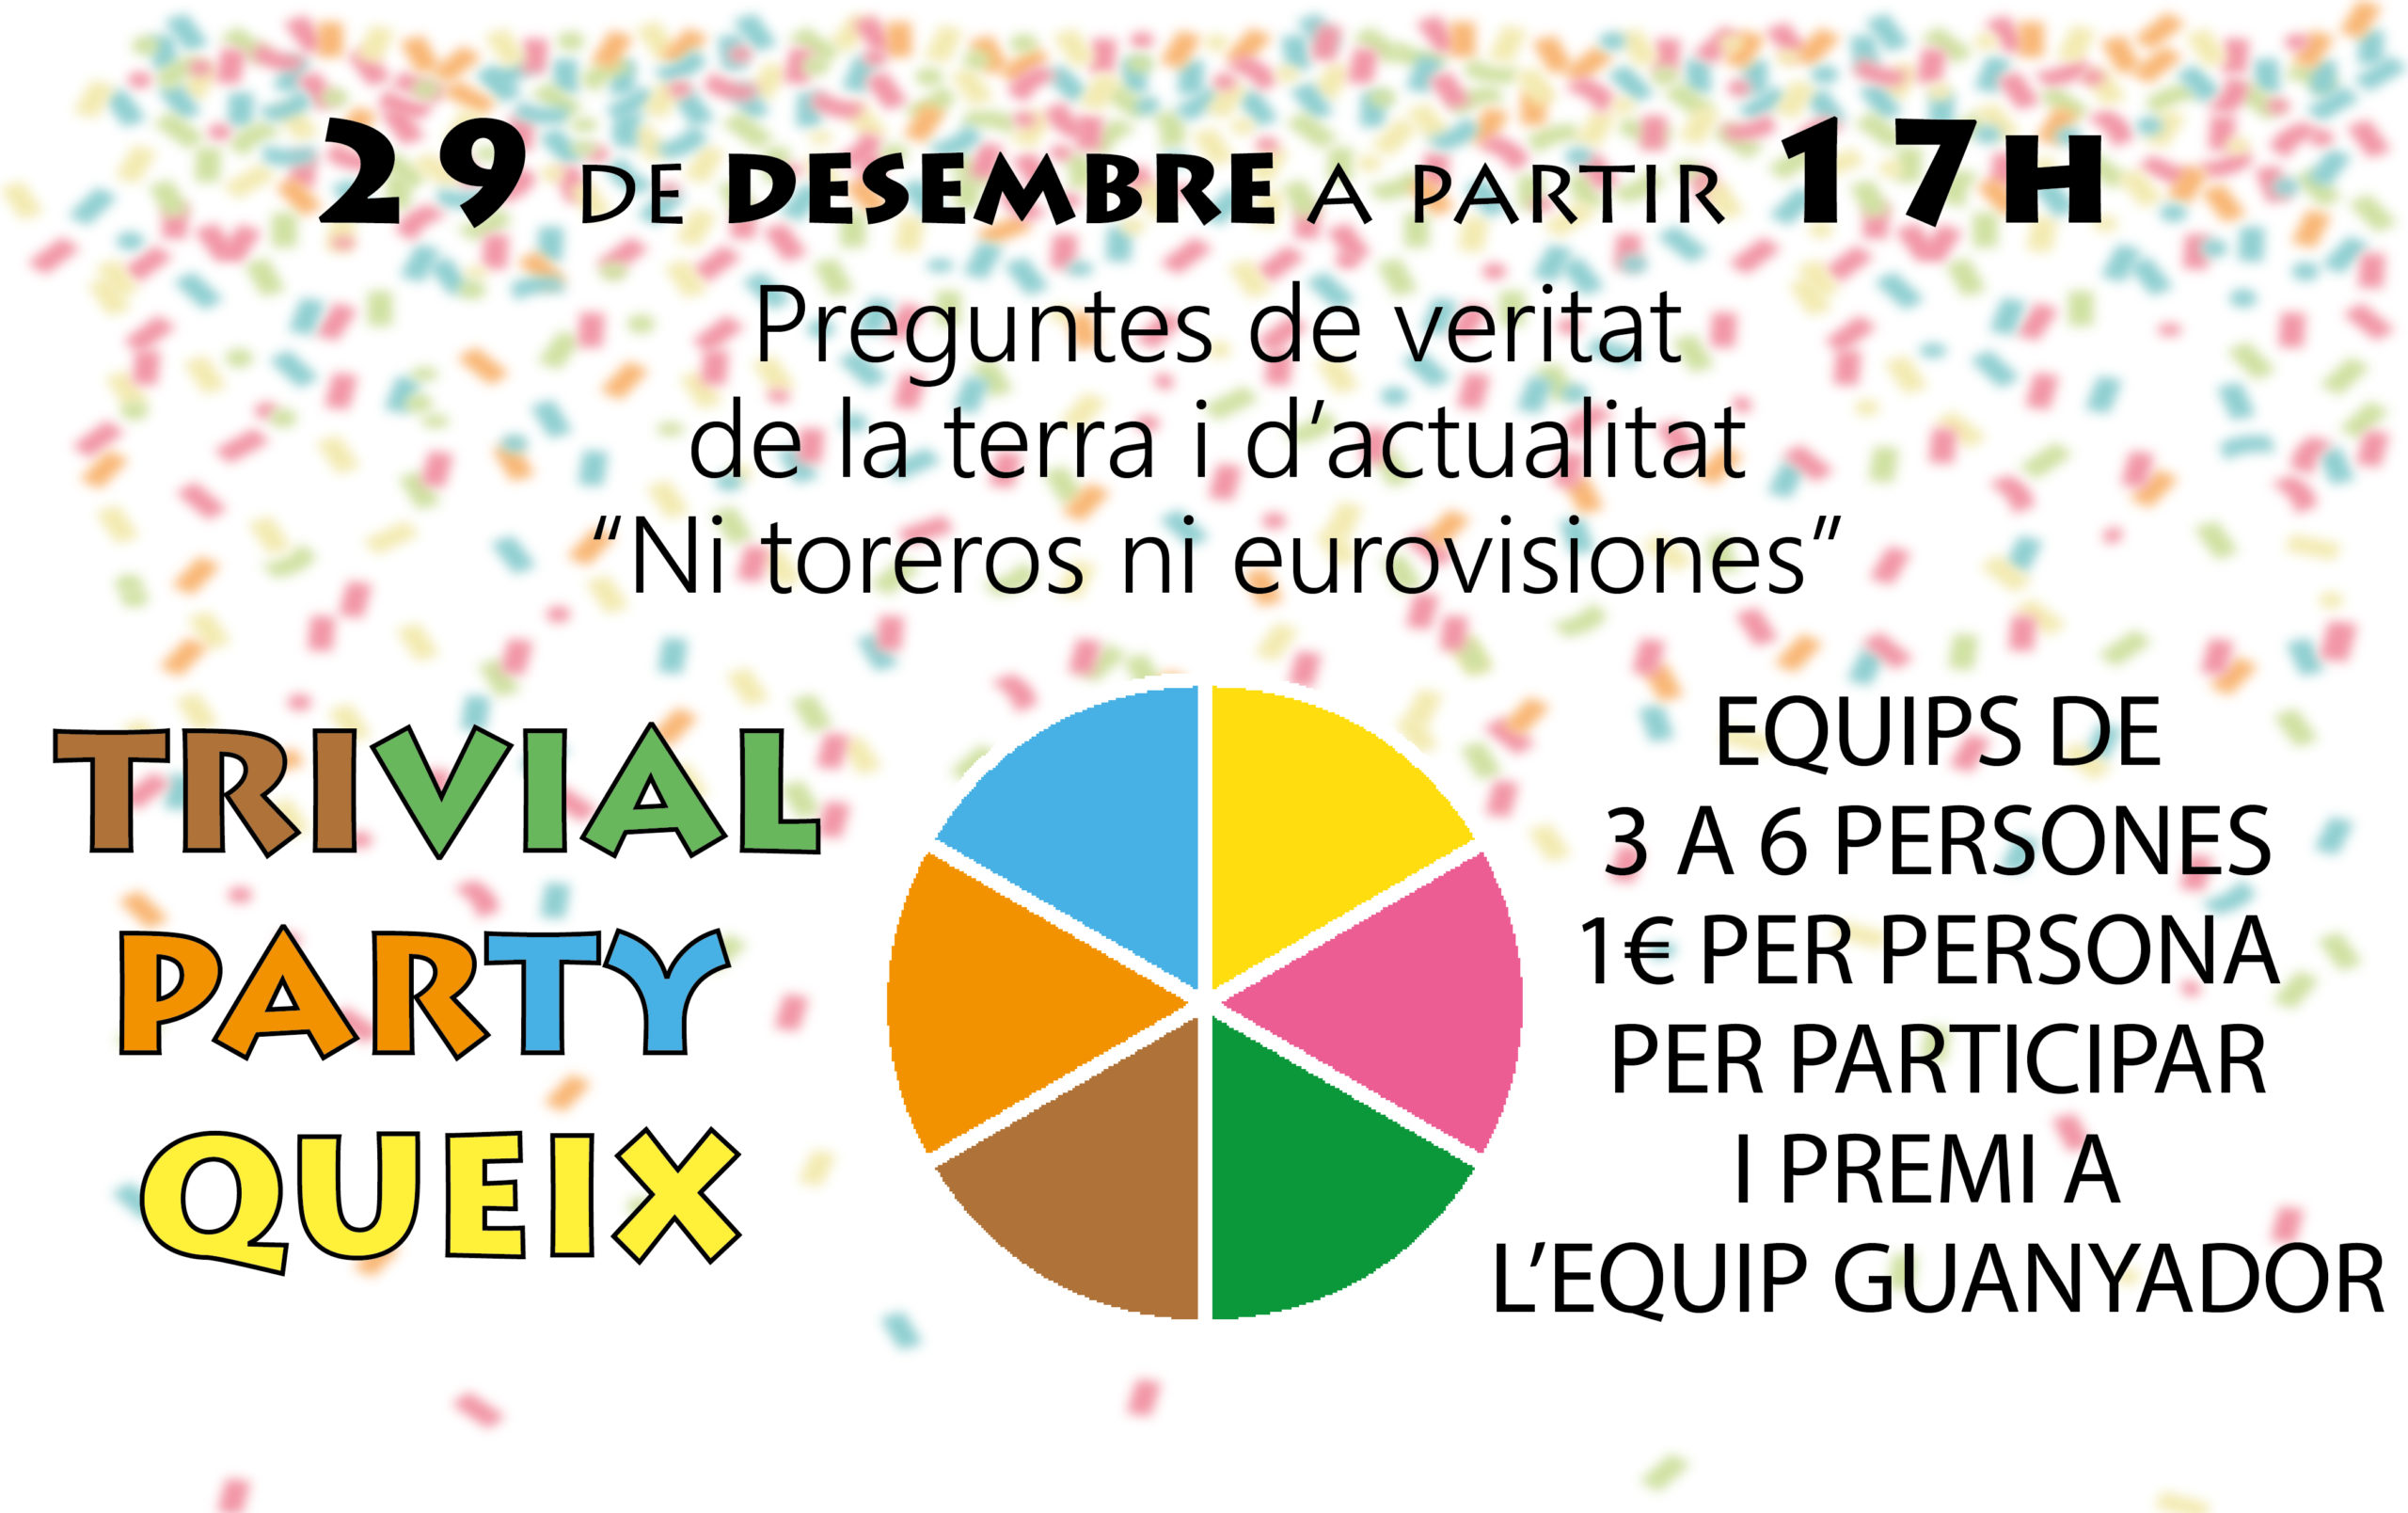 Trivial Party Queix